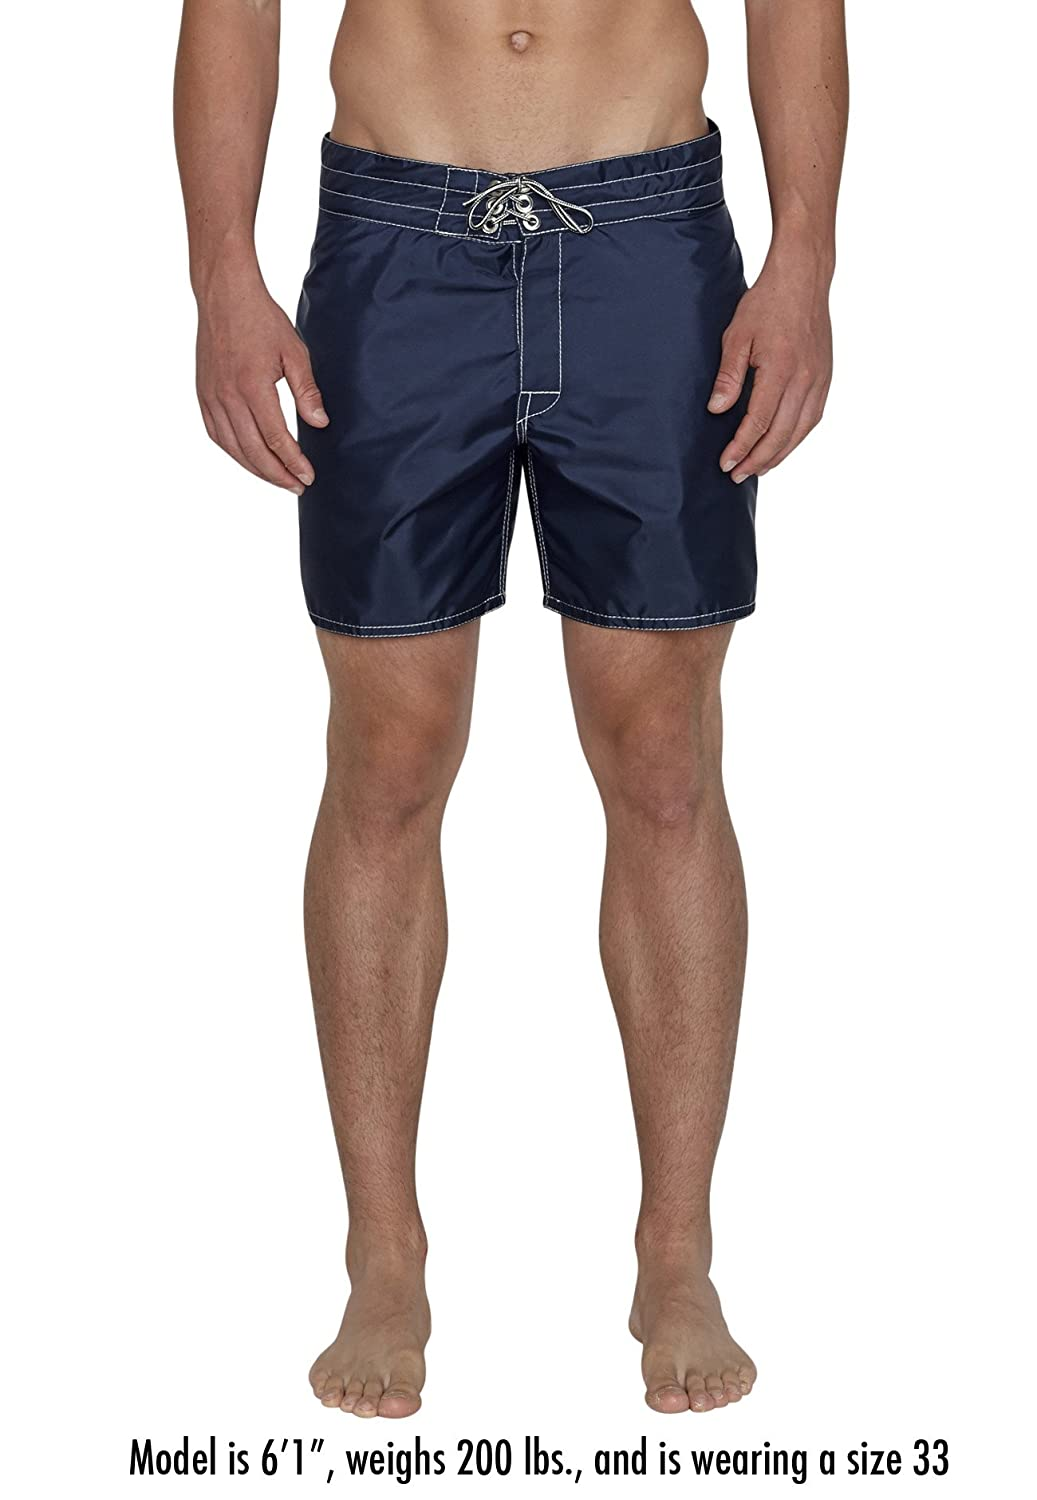 f38a1c6d6c Birdwell Men's Board Shorts - Short Length | Amazon.com